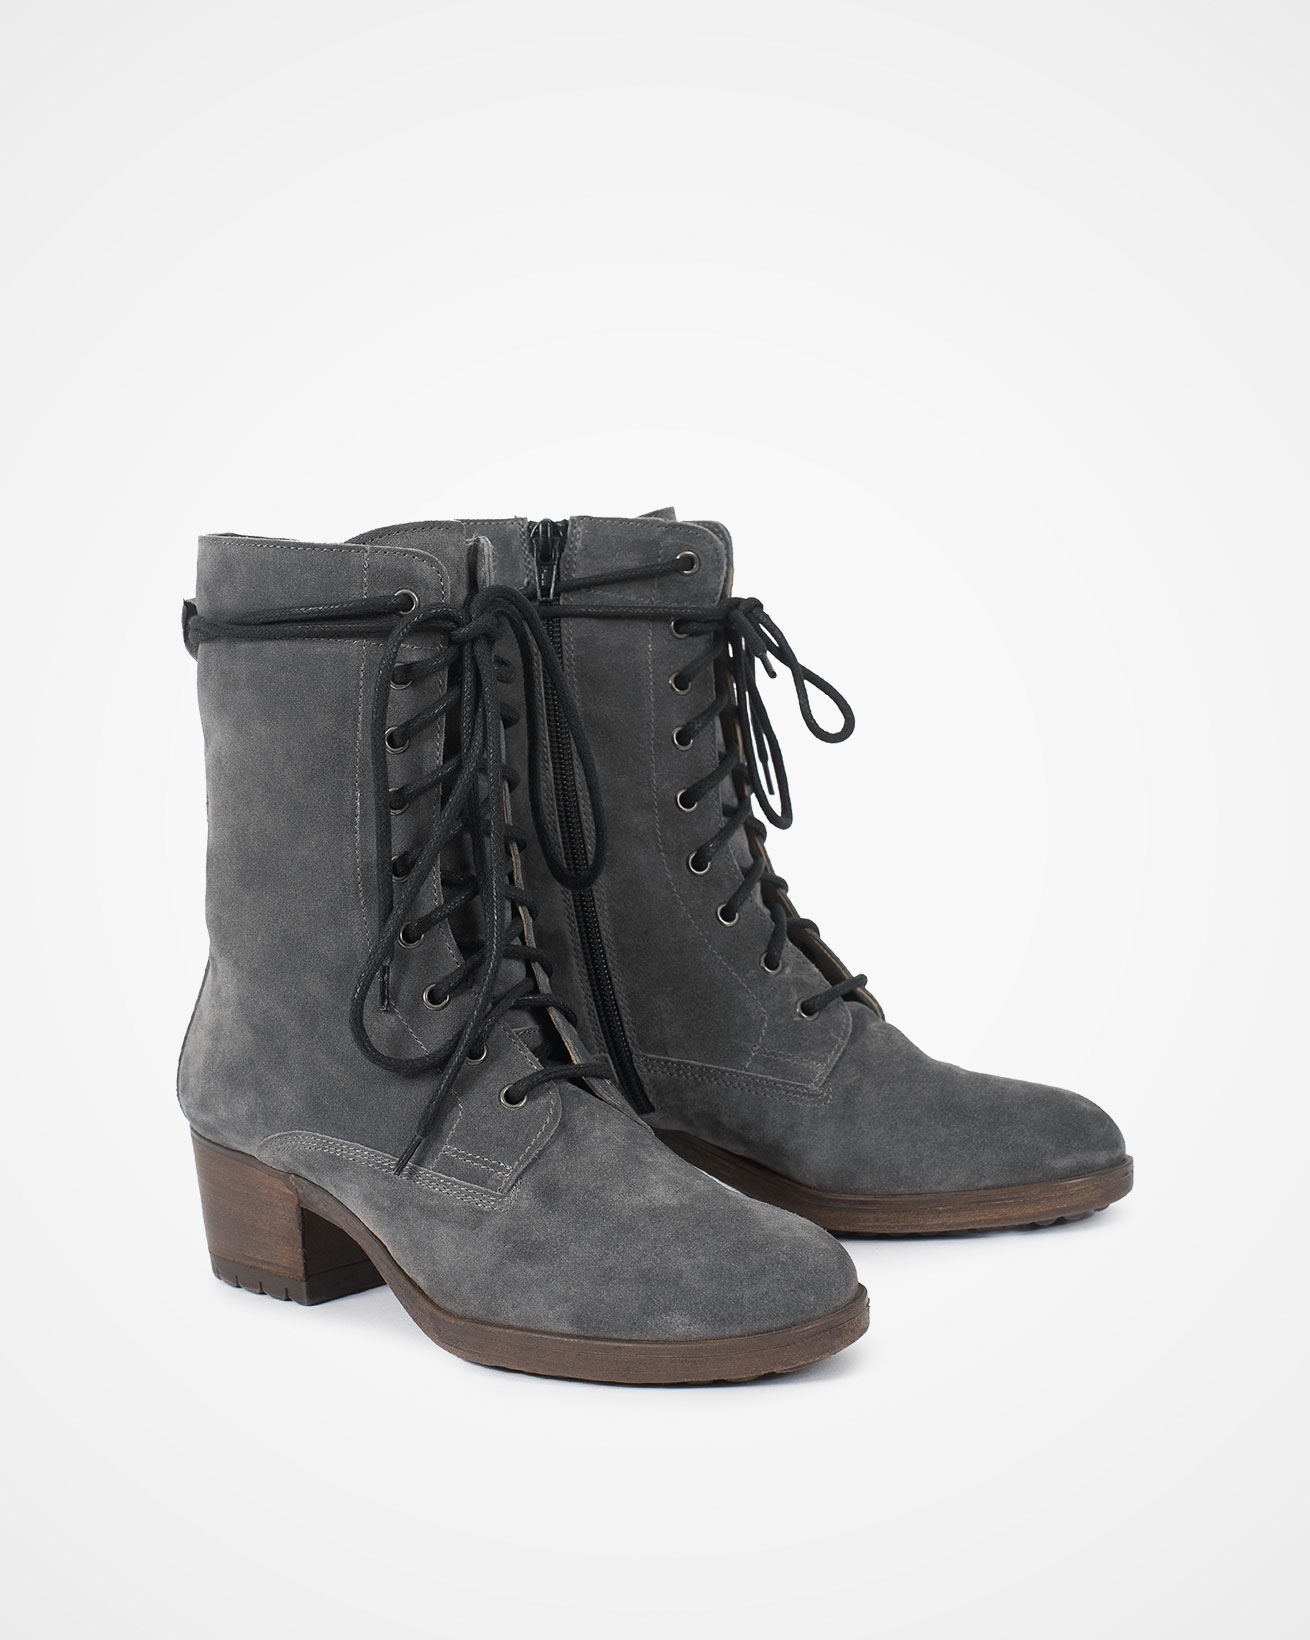 7794_block-heel-lace-up-ankle-boots_smoke-grey_pair.jpg